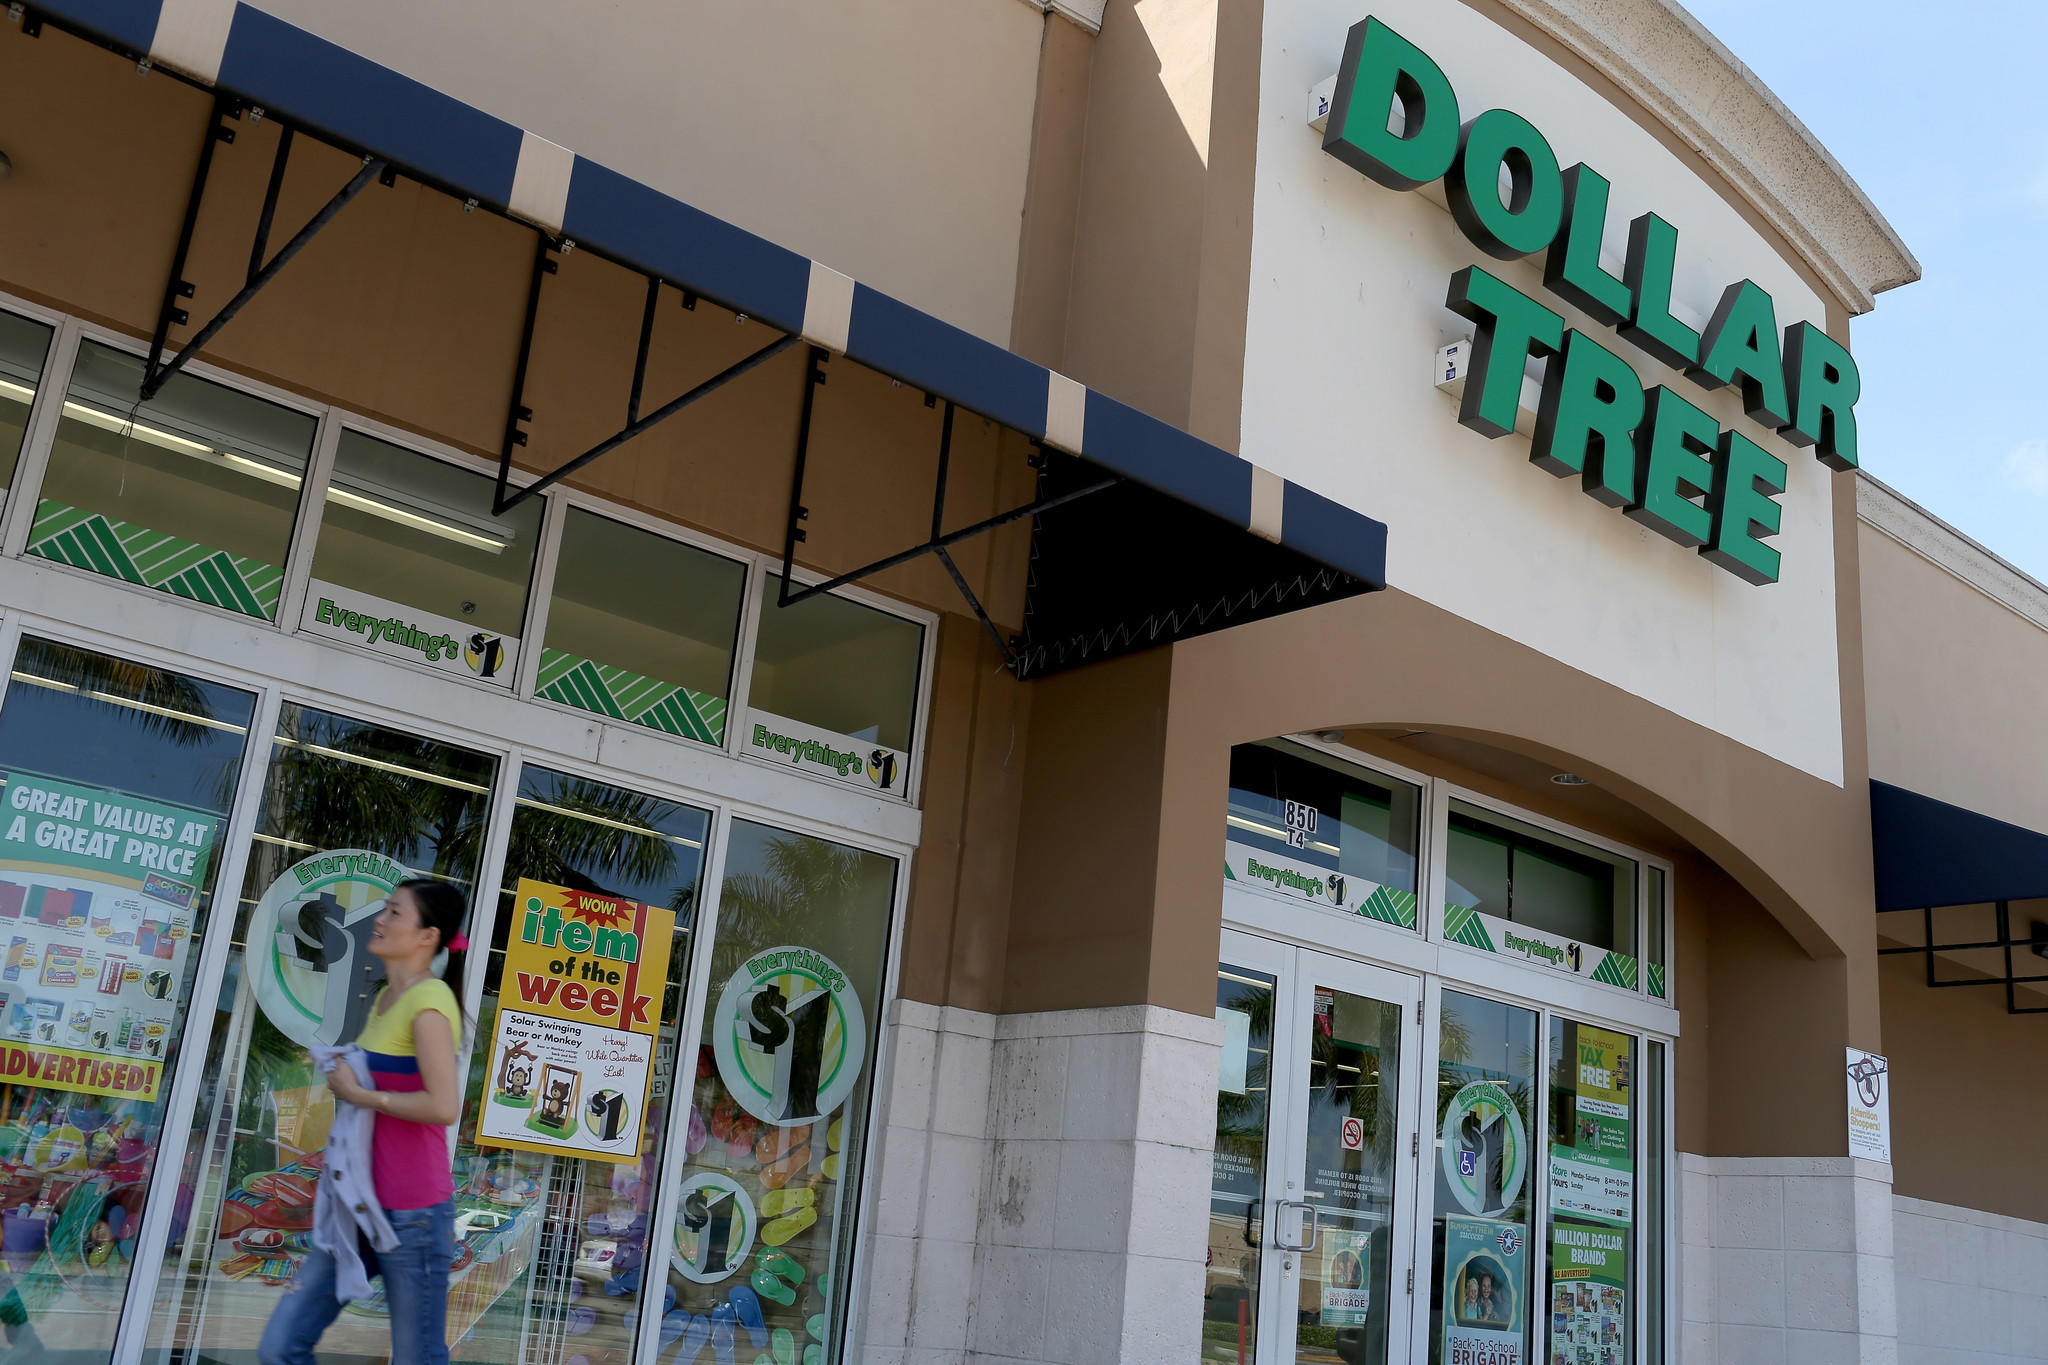 5 days ago· Dollar Tree's biggest problem is the dismal performance of Family Dollar, which is being squeezed by Walmart, Target, and Amazon. Here's how Family Dollar dragged down Dollar Tree.